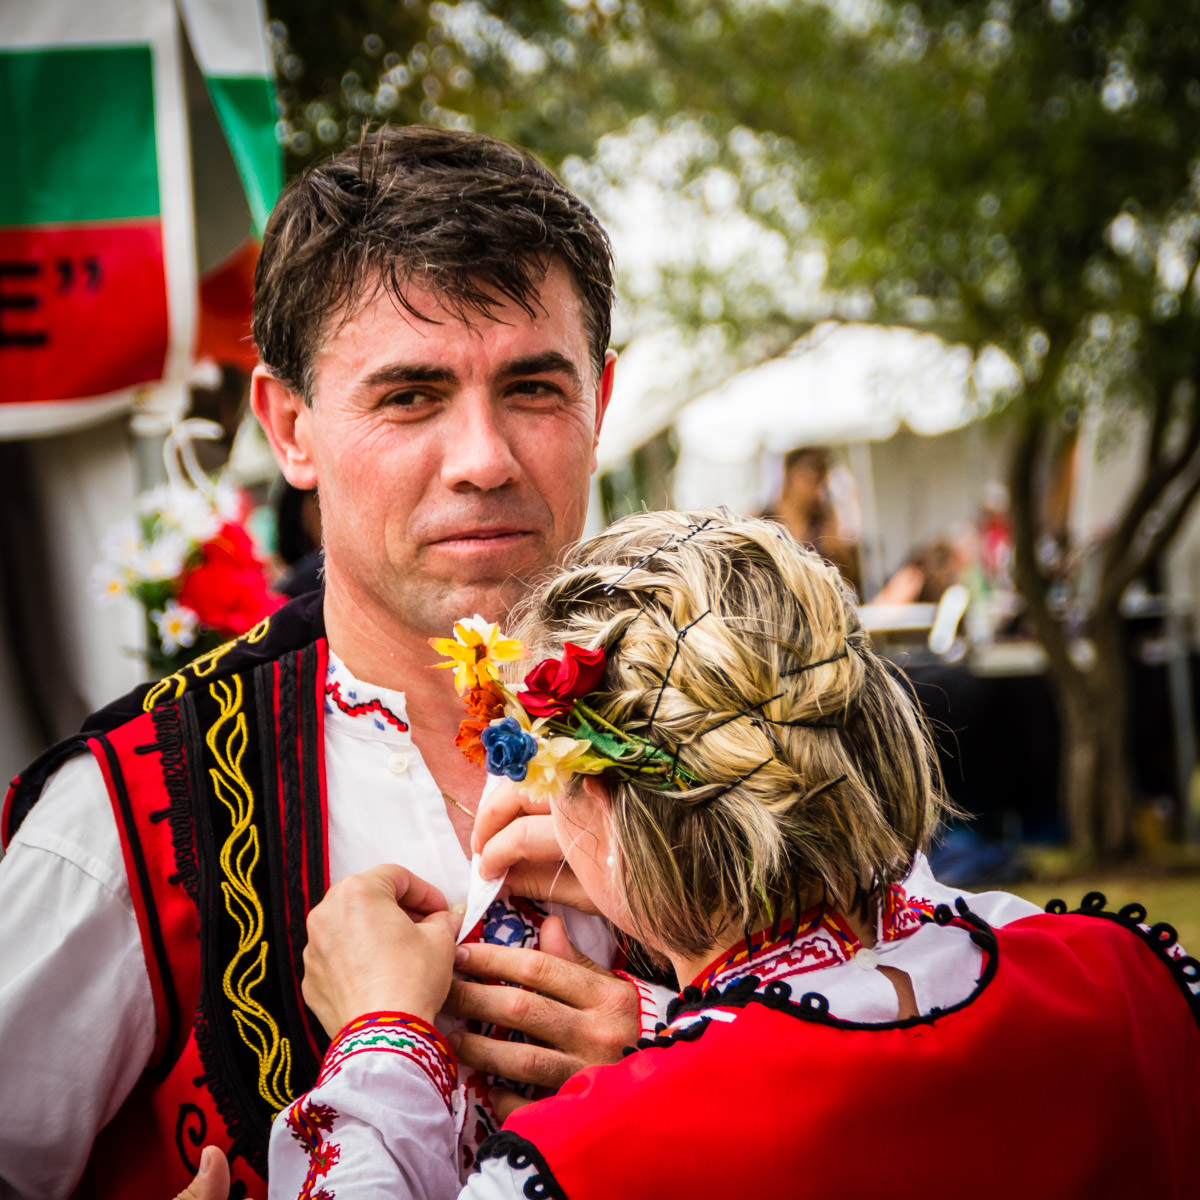 A Bulgarian dancer's traditional costume is adjusted by his companion at Addison Worldfest, Addison, Texas.